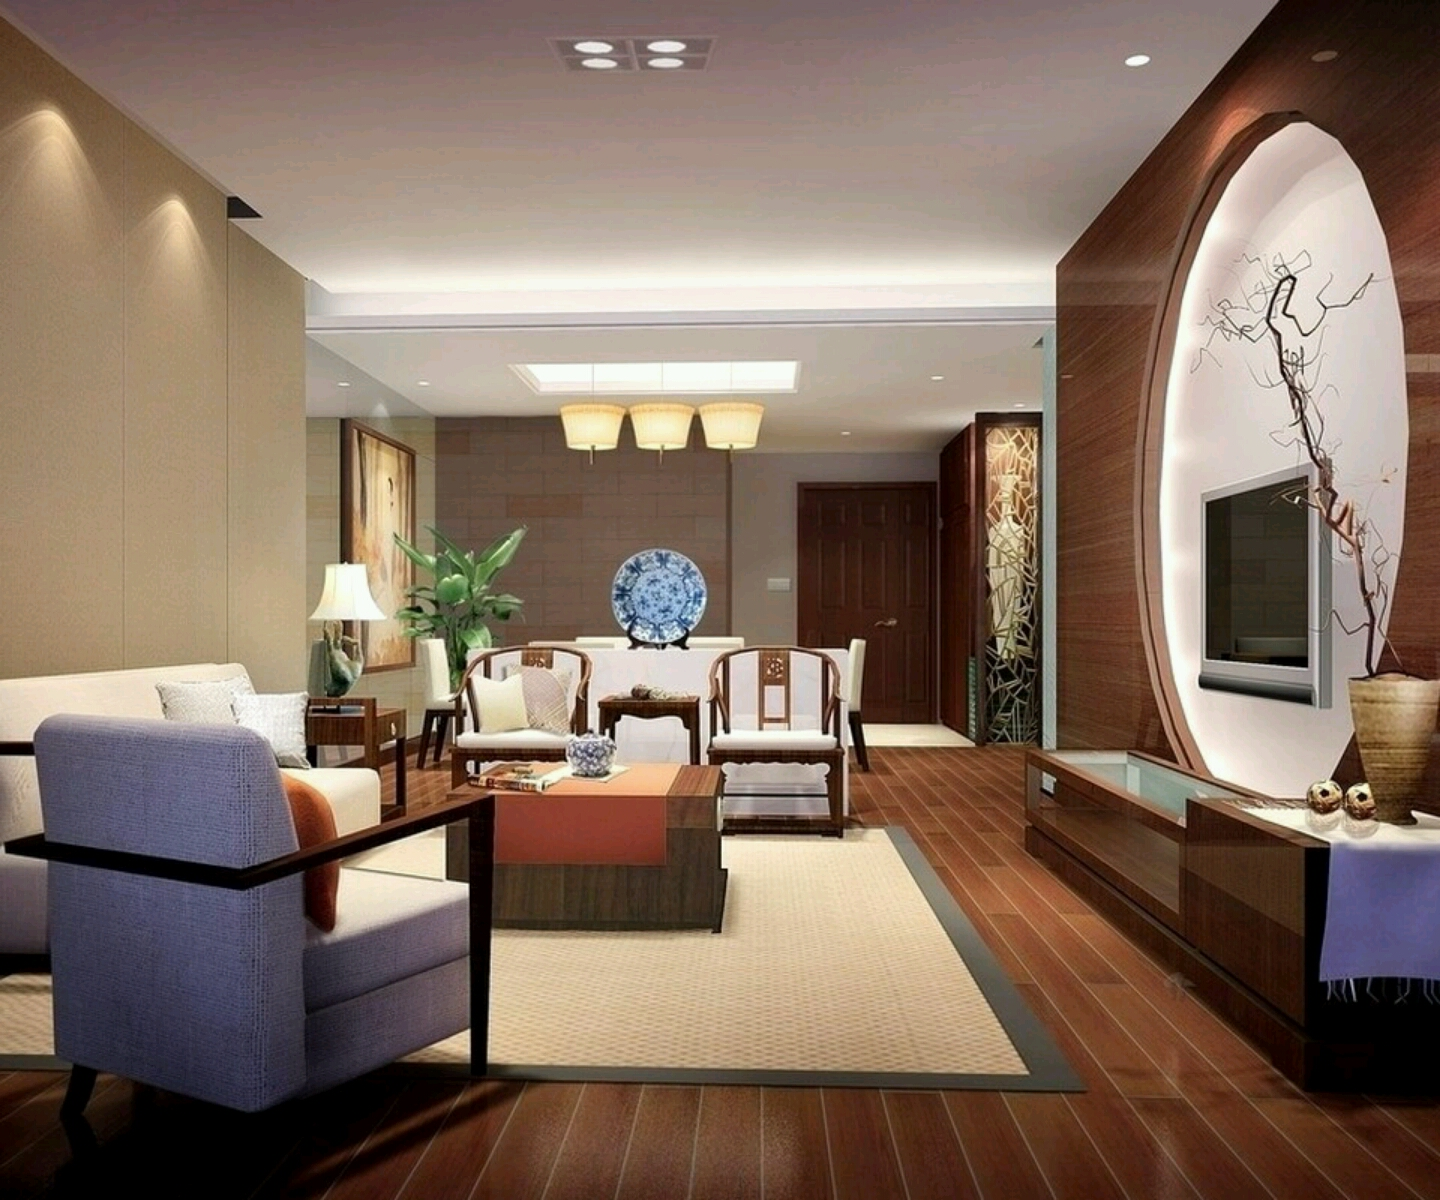 Luxury homes interior decoration living room designs ideas Interior home decoration